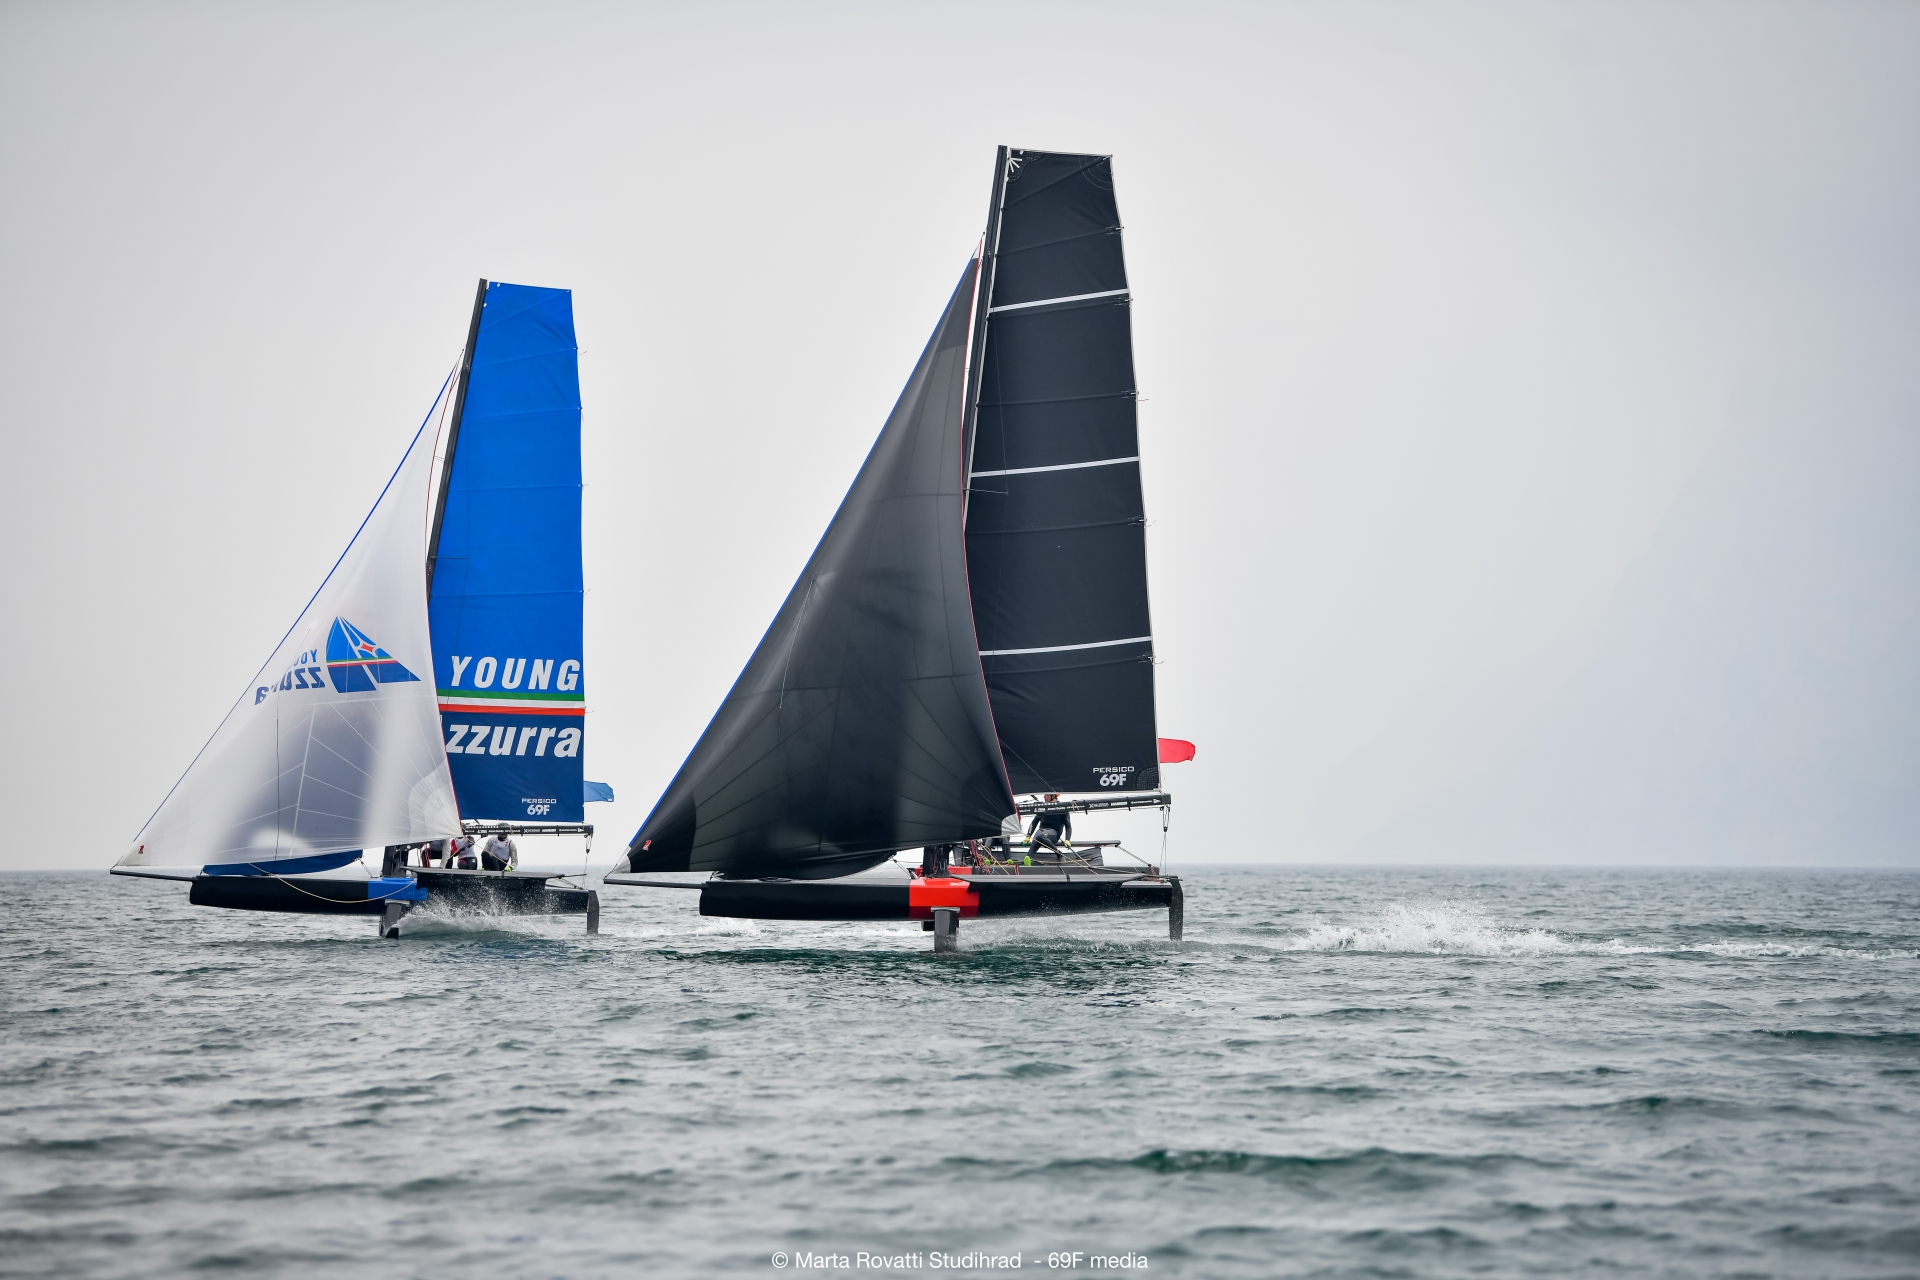 Young Azzurra wins the Grand Prix 1.1 in the Persico 69F Cup - NEWS - Yacht Club Costa Smeralda